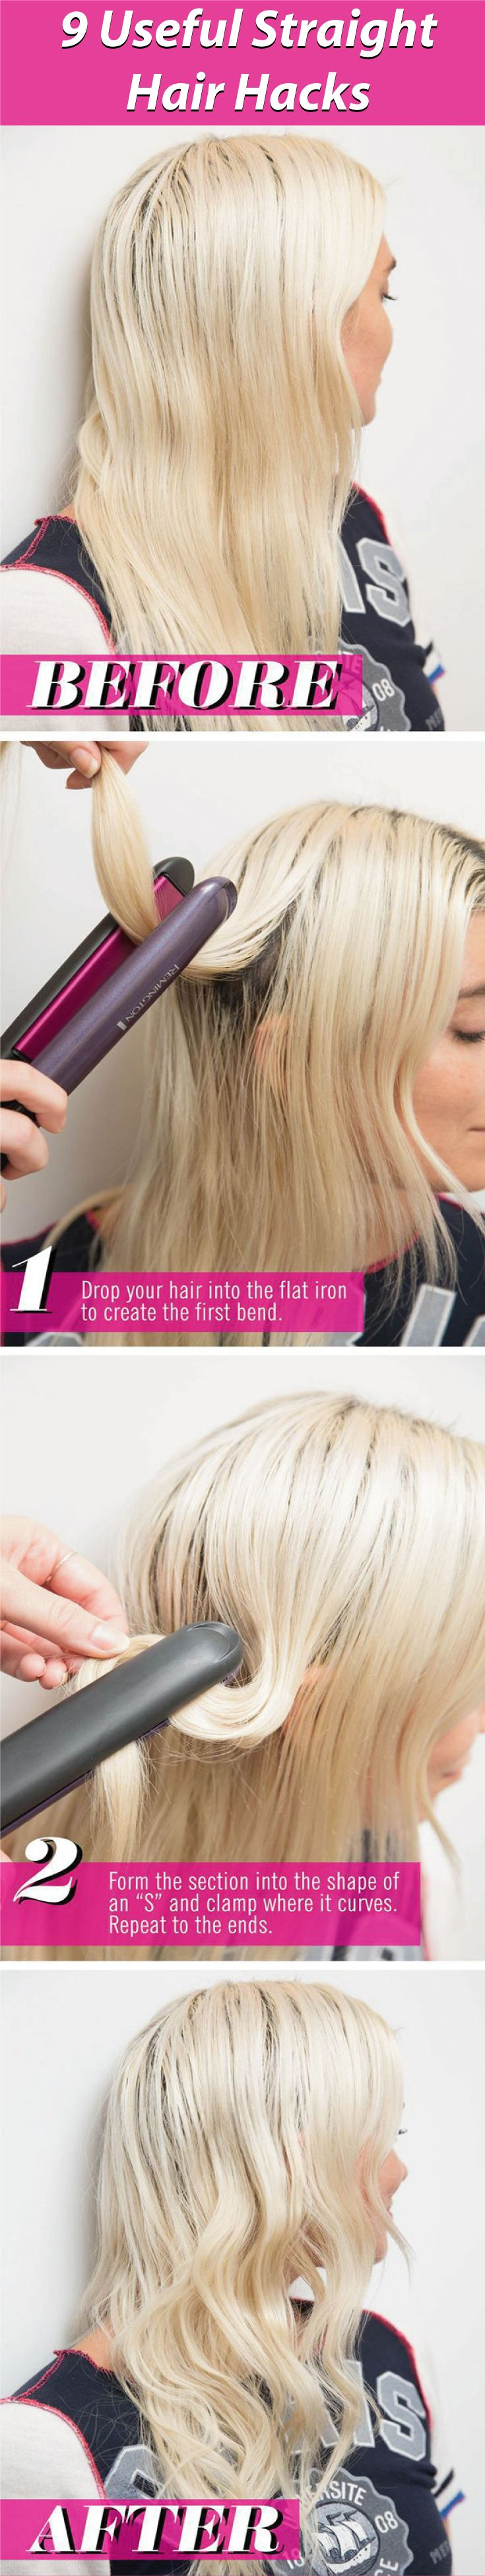 Having nice and straight hair? Need tips and tricks, here we come with a  9 usef...